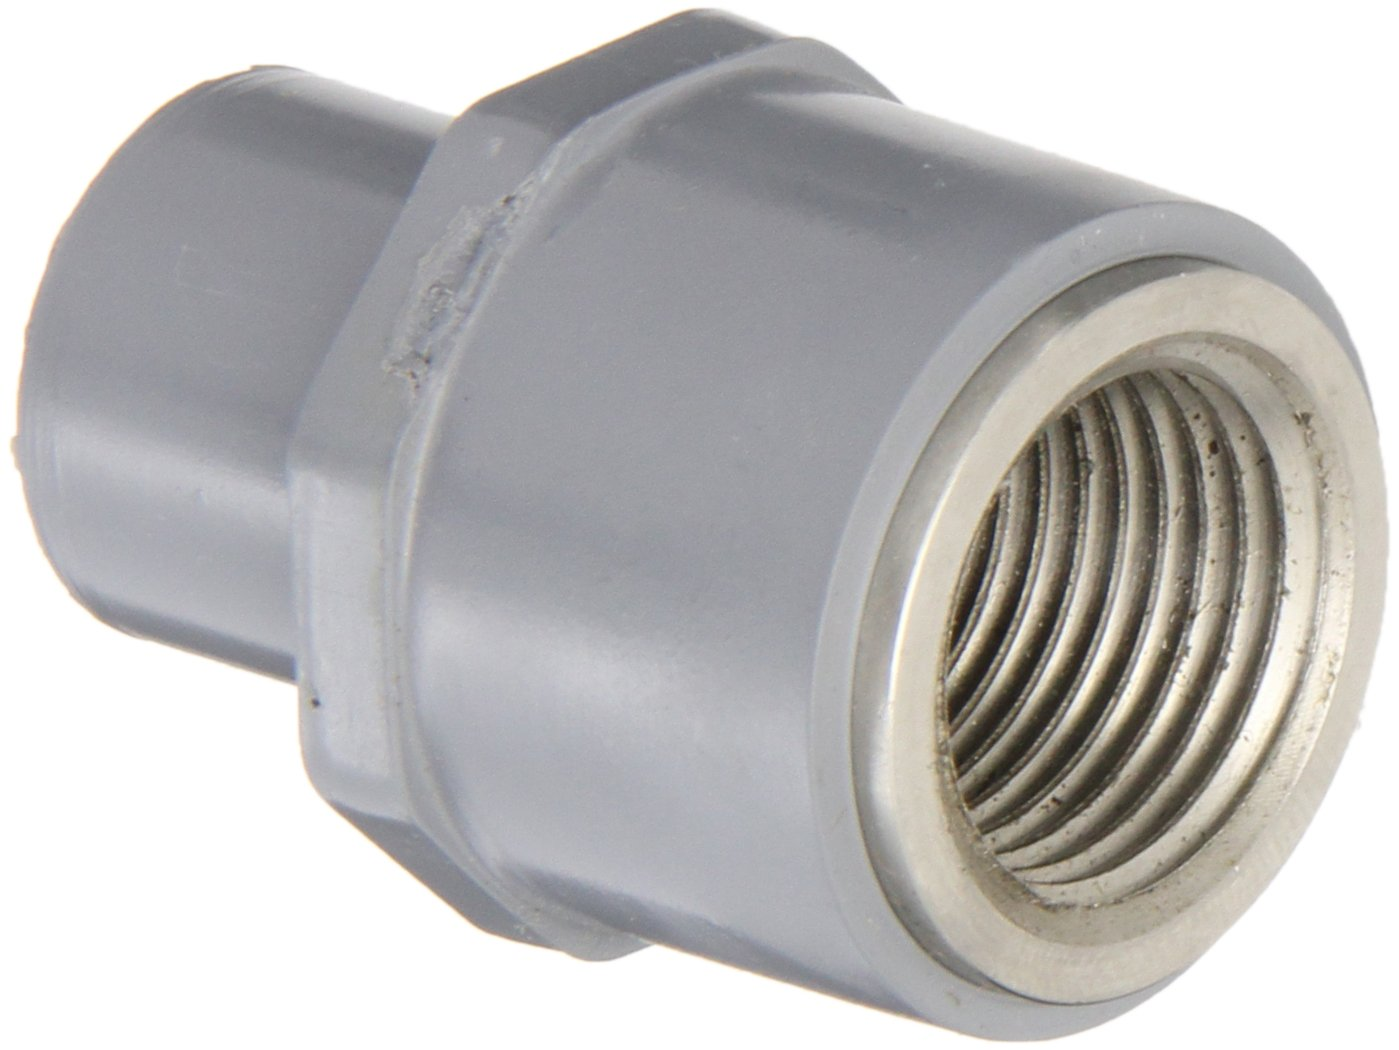 3//4 NPT Female x SPG Adapter GF Piping Systems CPVC to Stainless Steel 316 Transition Pipe Fitting Gray Schedule 80